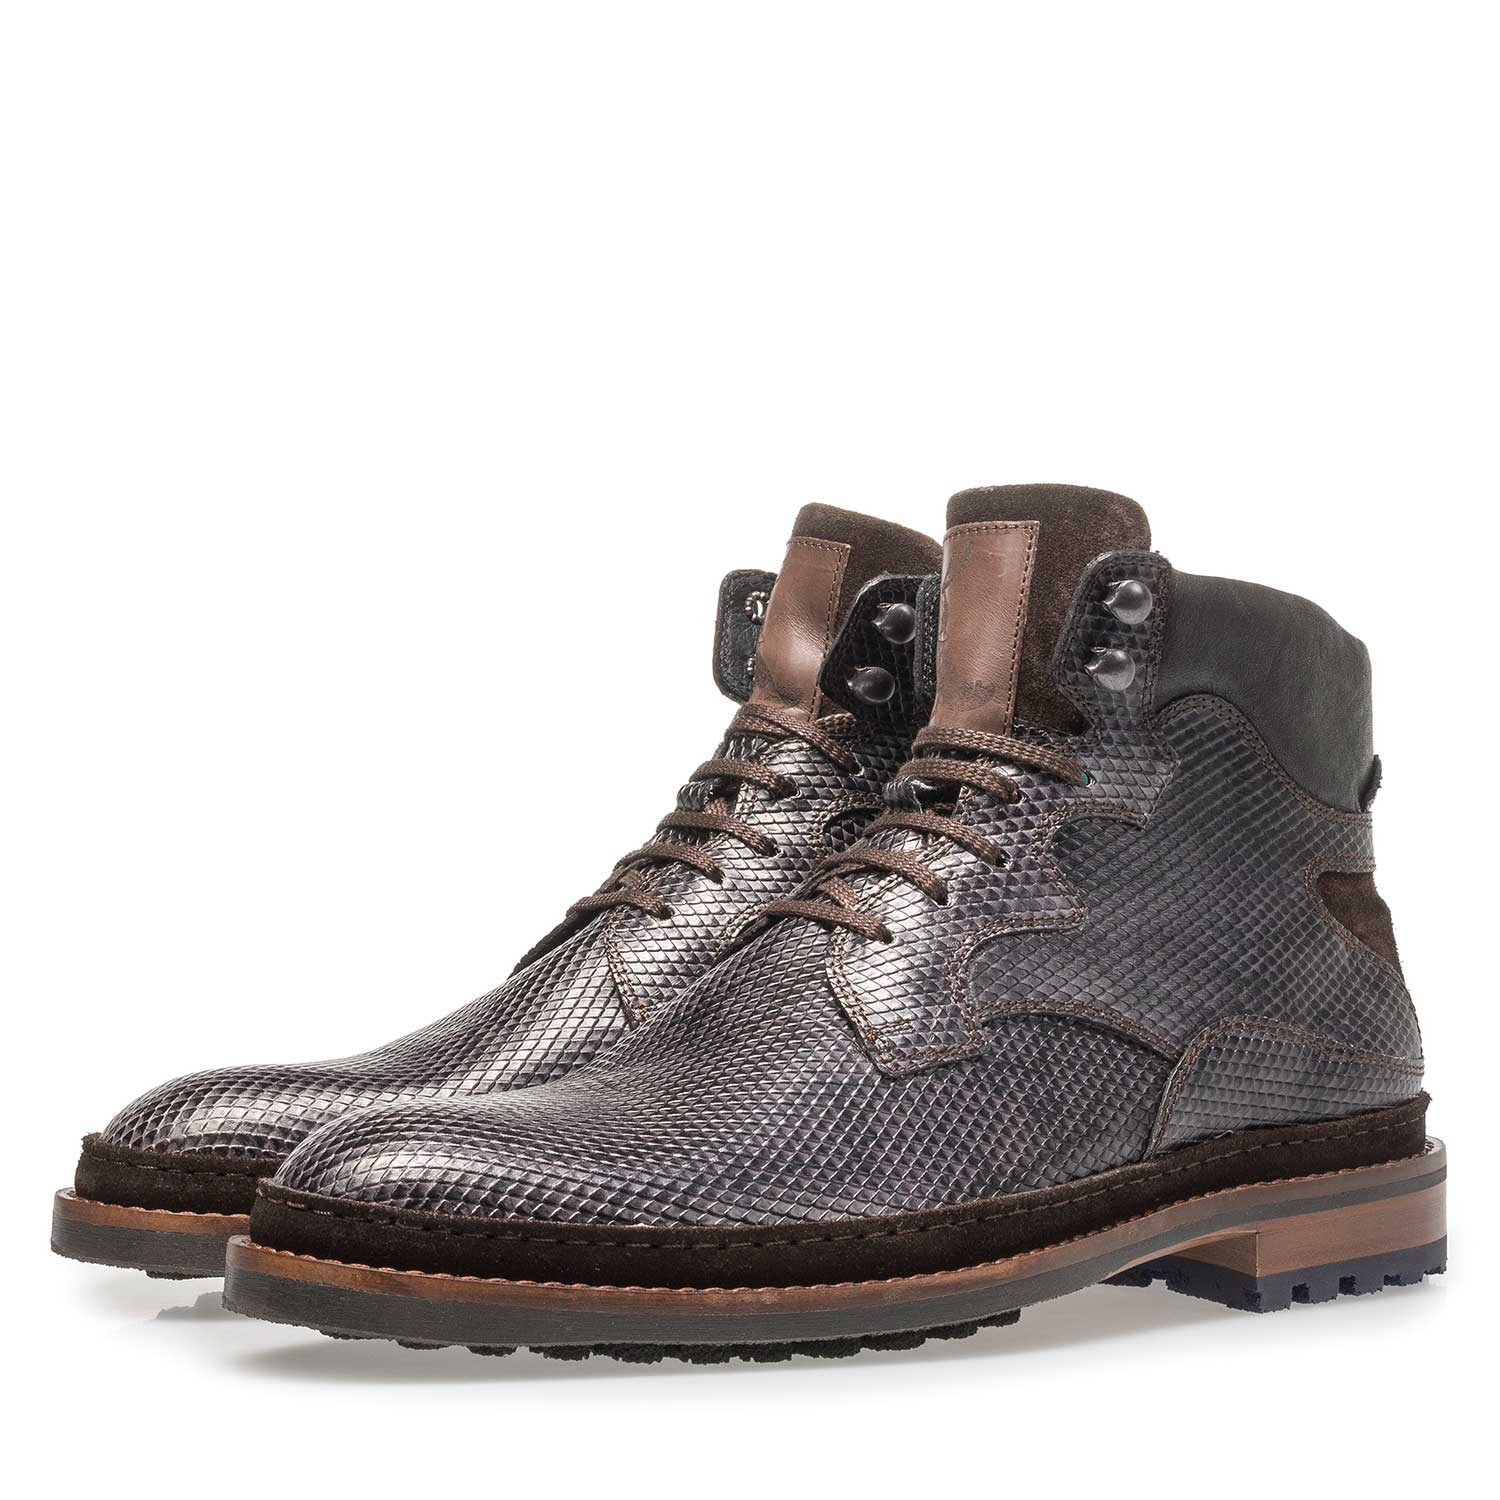 10503/04 - Dark grey leather lace boot with snake print